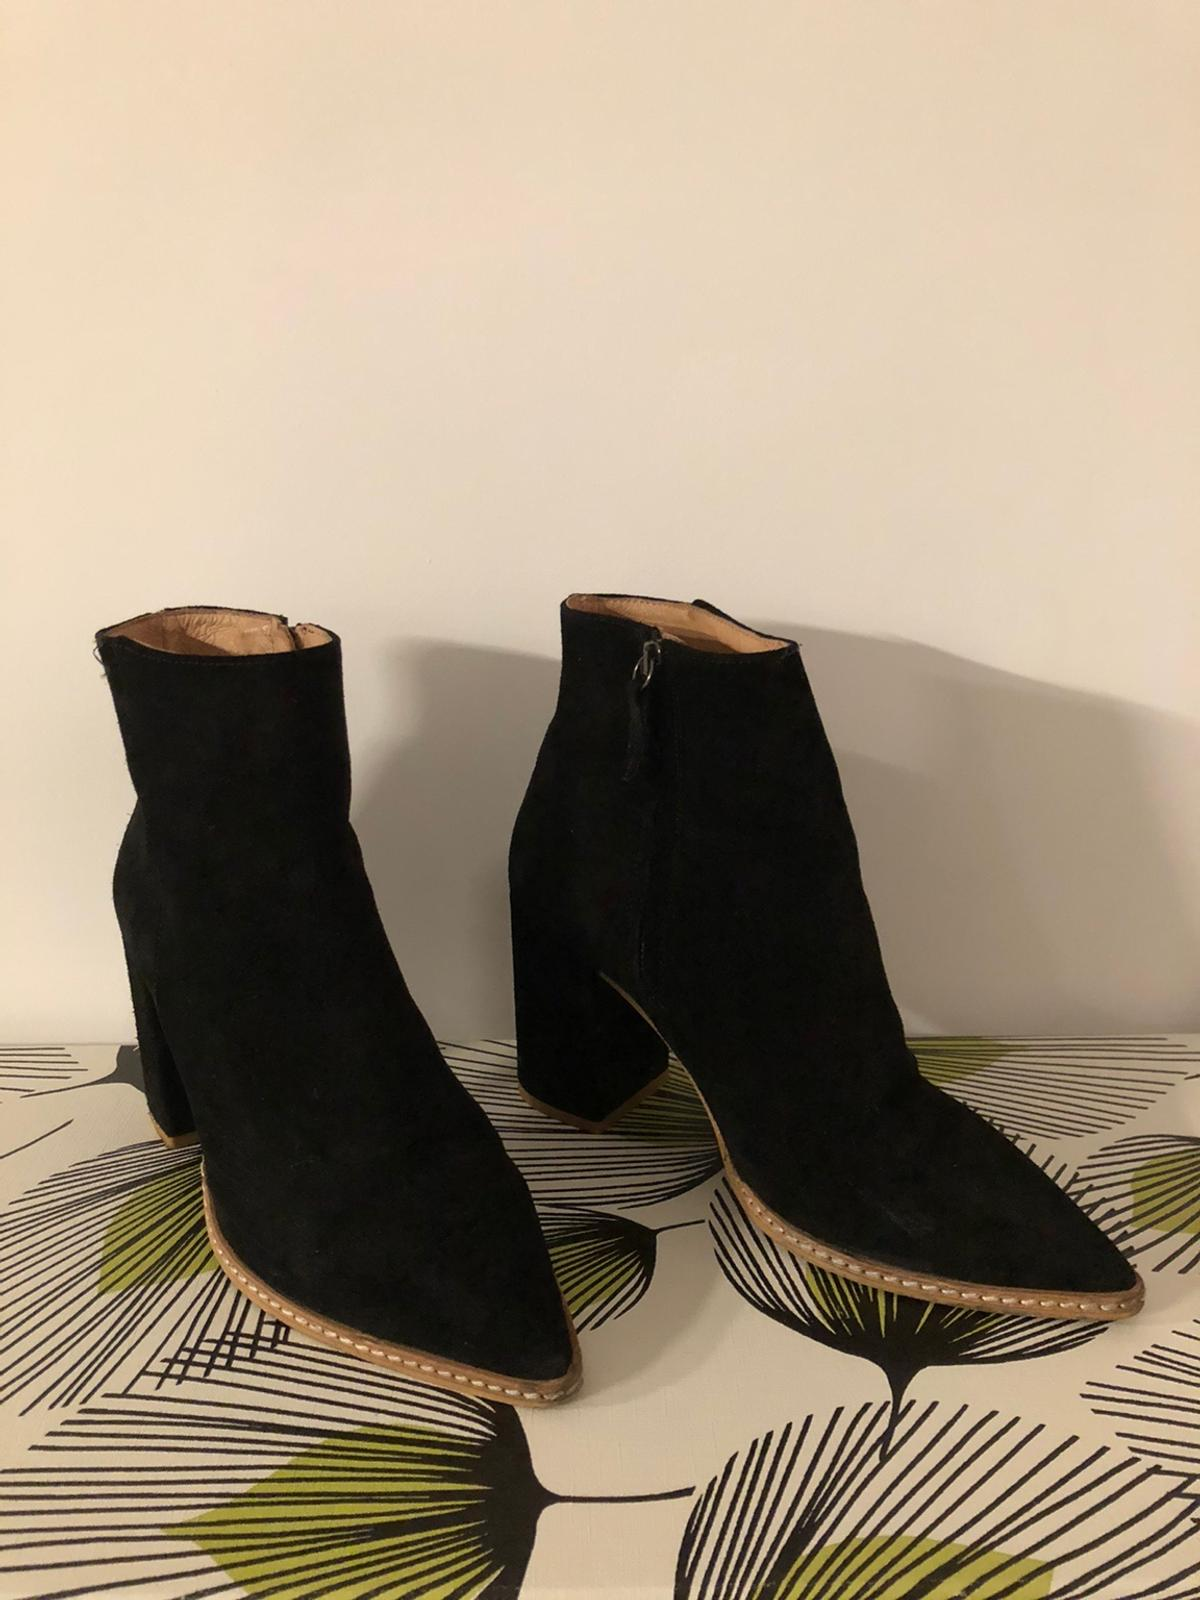 Great pair of Office pointed boots with block heel. Sizing is EU40 which seems to be equivalent to a UK 7 when I've checked online. Ideal for a night out or casual wear. Perfect for any upcoming Christmas parties and celebrations. Originally cost £84 so grab a bargain while you can!